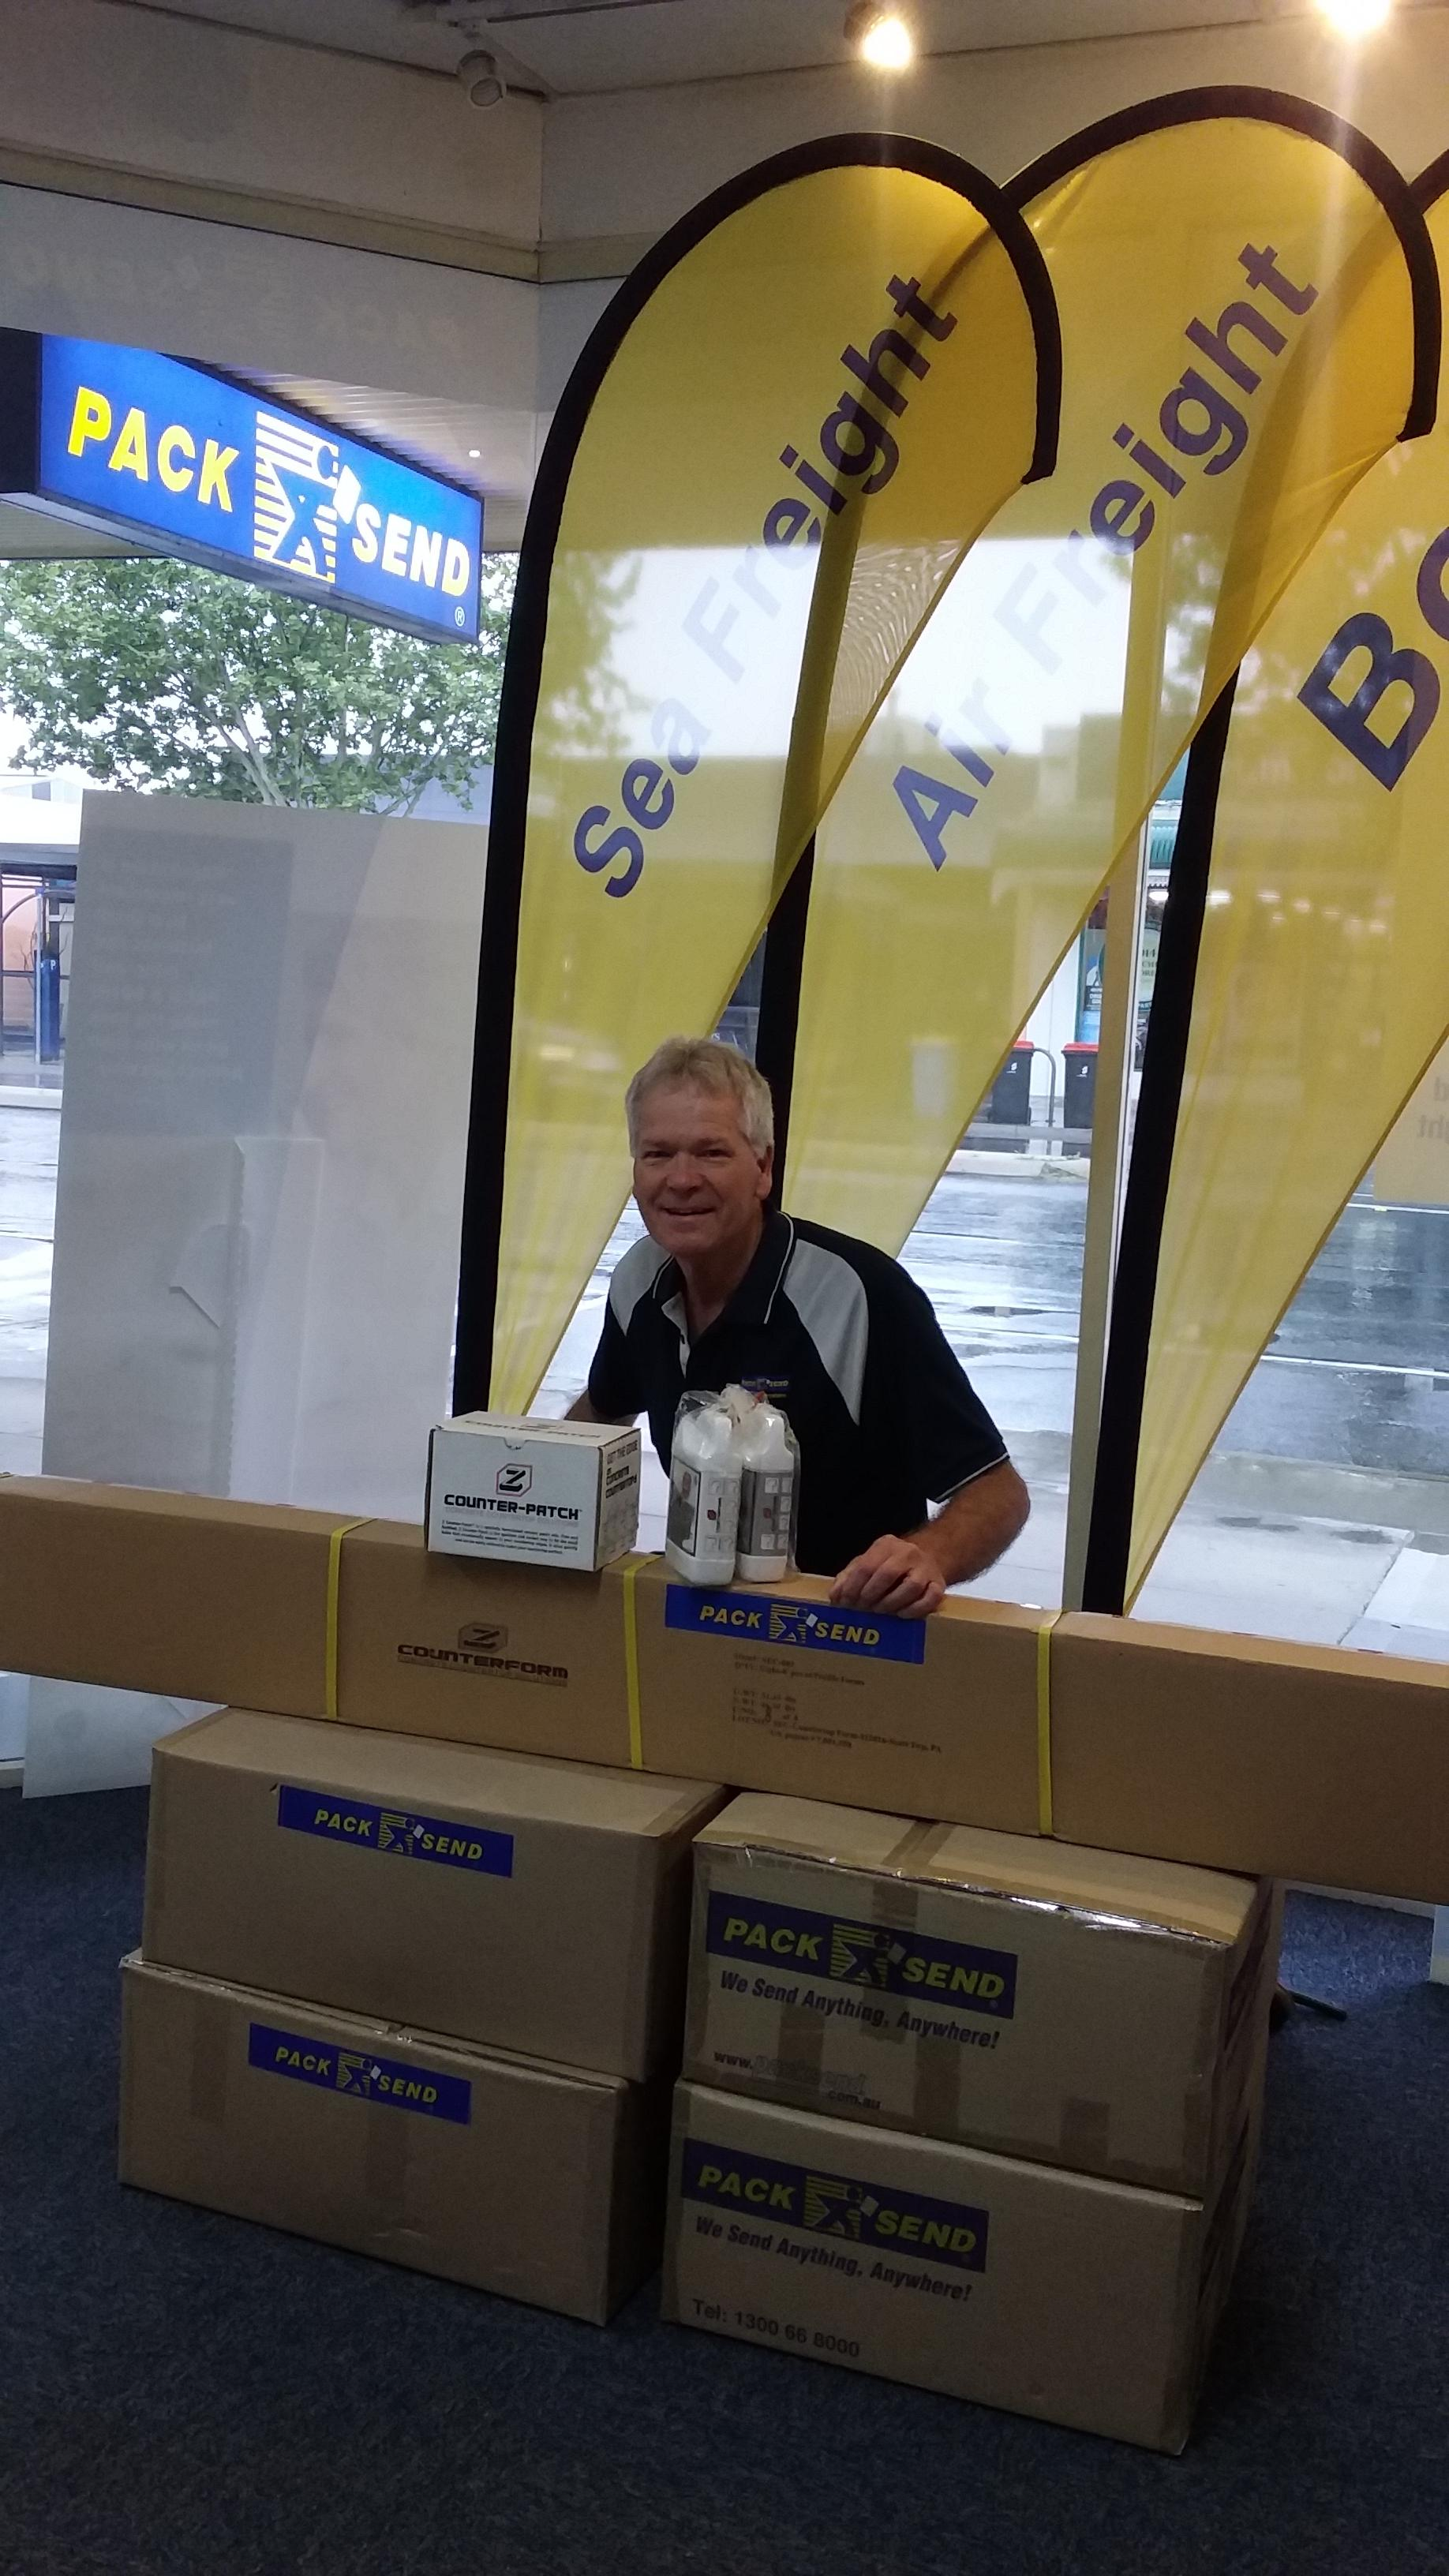 Concrete Countertops Australia grows their business with PACK & SEND